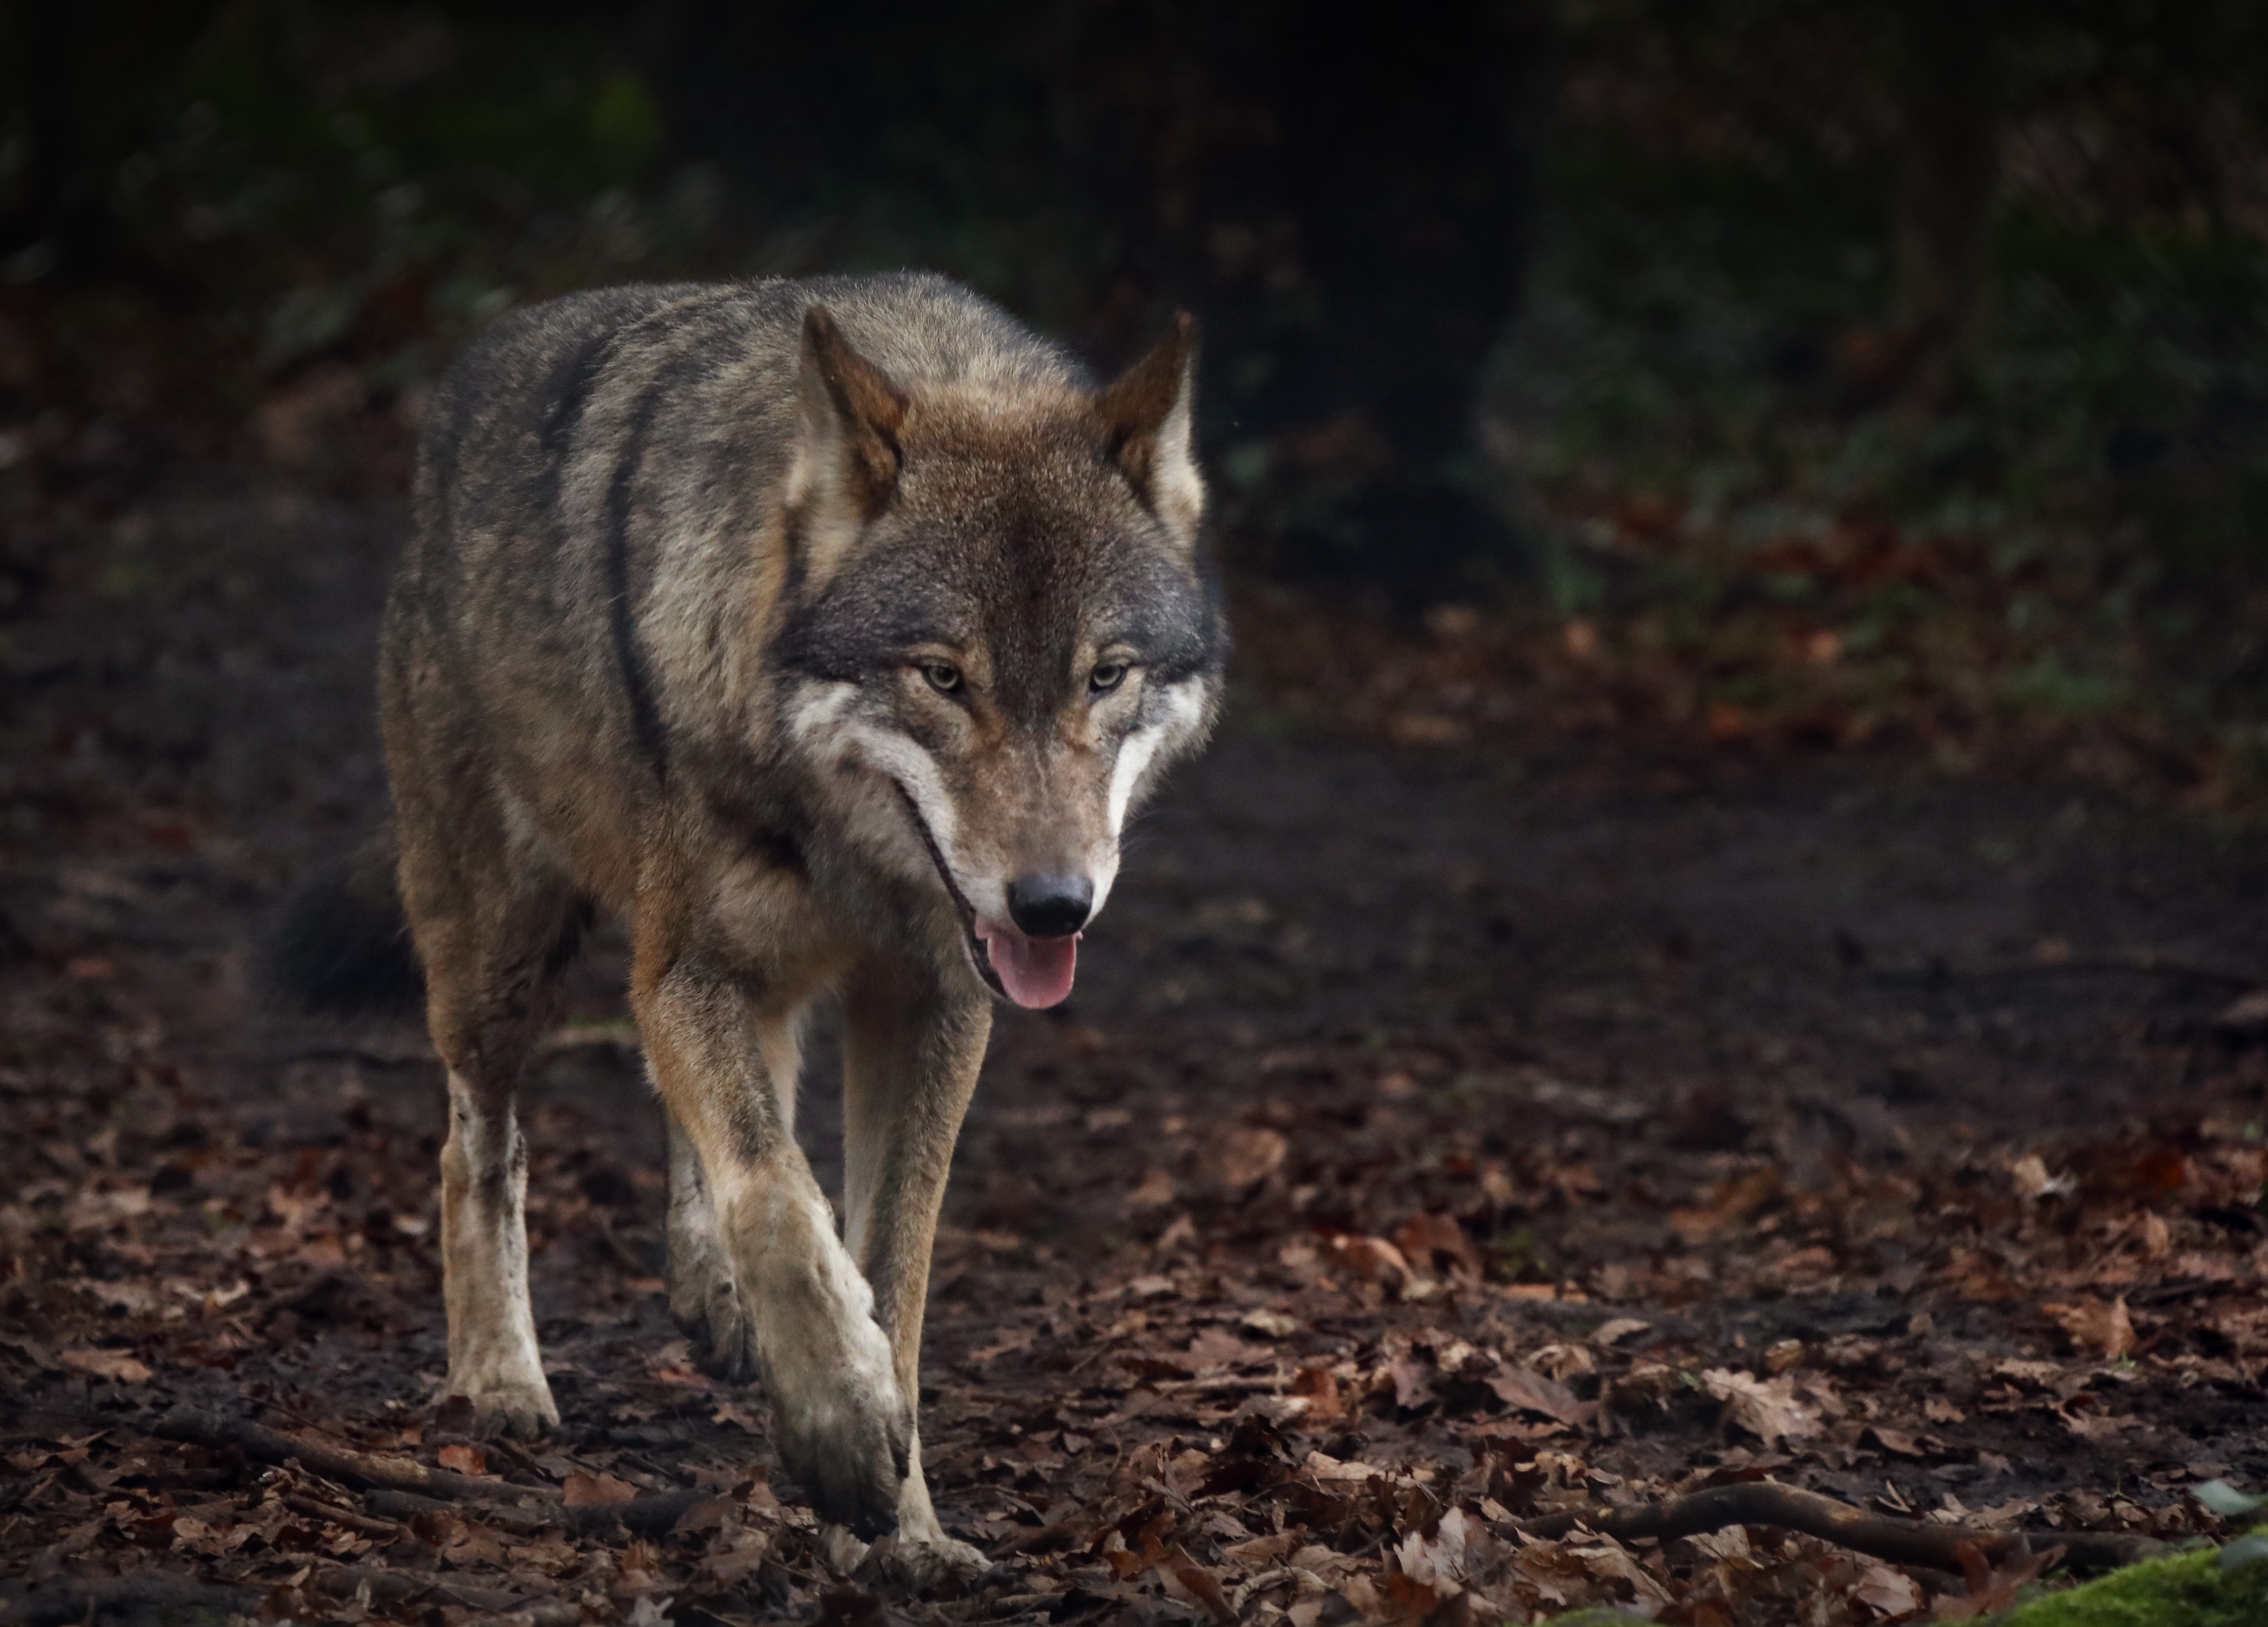 52044 download wallpaper Animals, Wolf, Protruding Tongue, Tongue Stuck Out, Predator screensavers and pictures for free